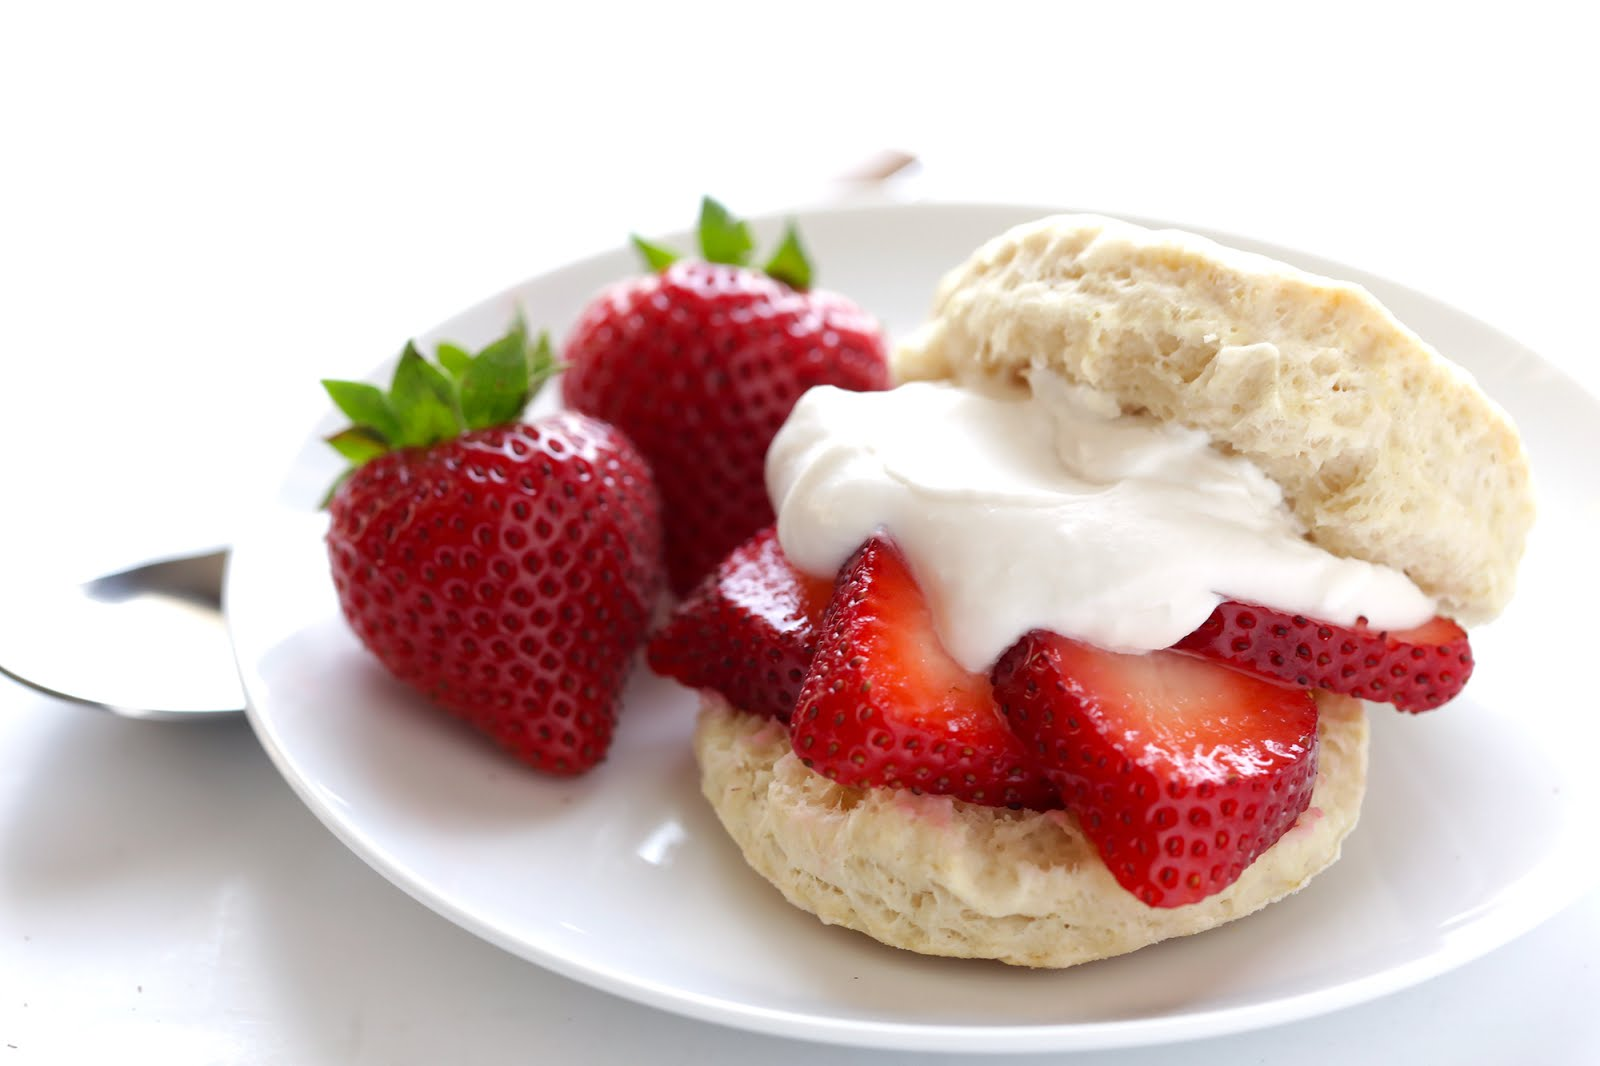 Strawberry Shortcake with Coconut Whipped Cream (Vegan) -- 4 ingredient biscuits, plus juicy strawberries, plus easy coconut whipped cream. Delish! | gimmesomeoven.com #dessert #vegan